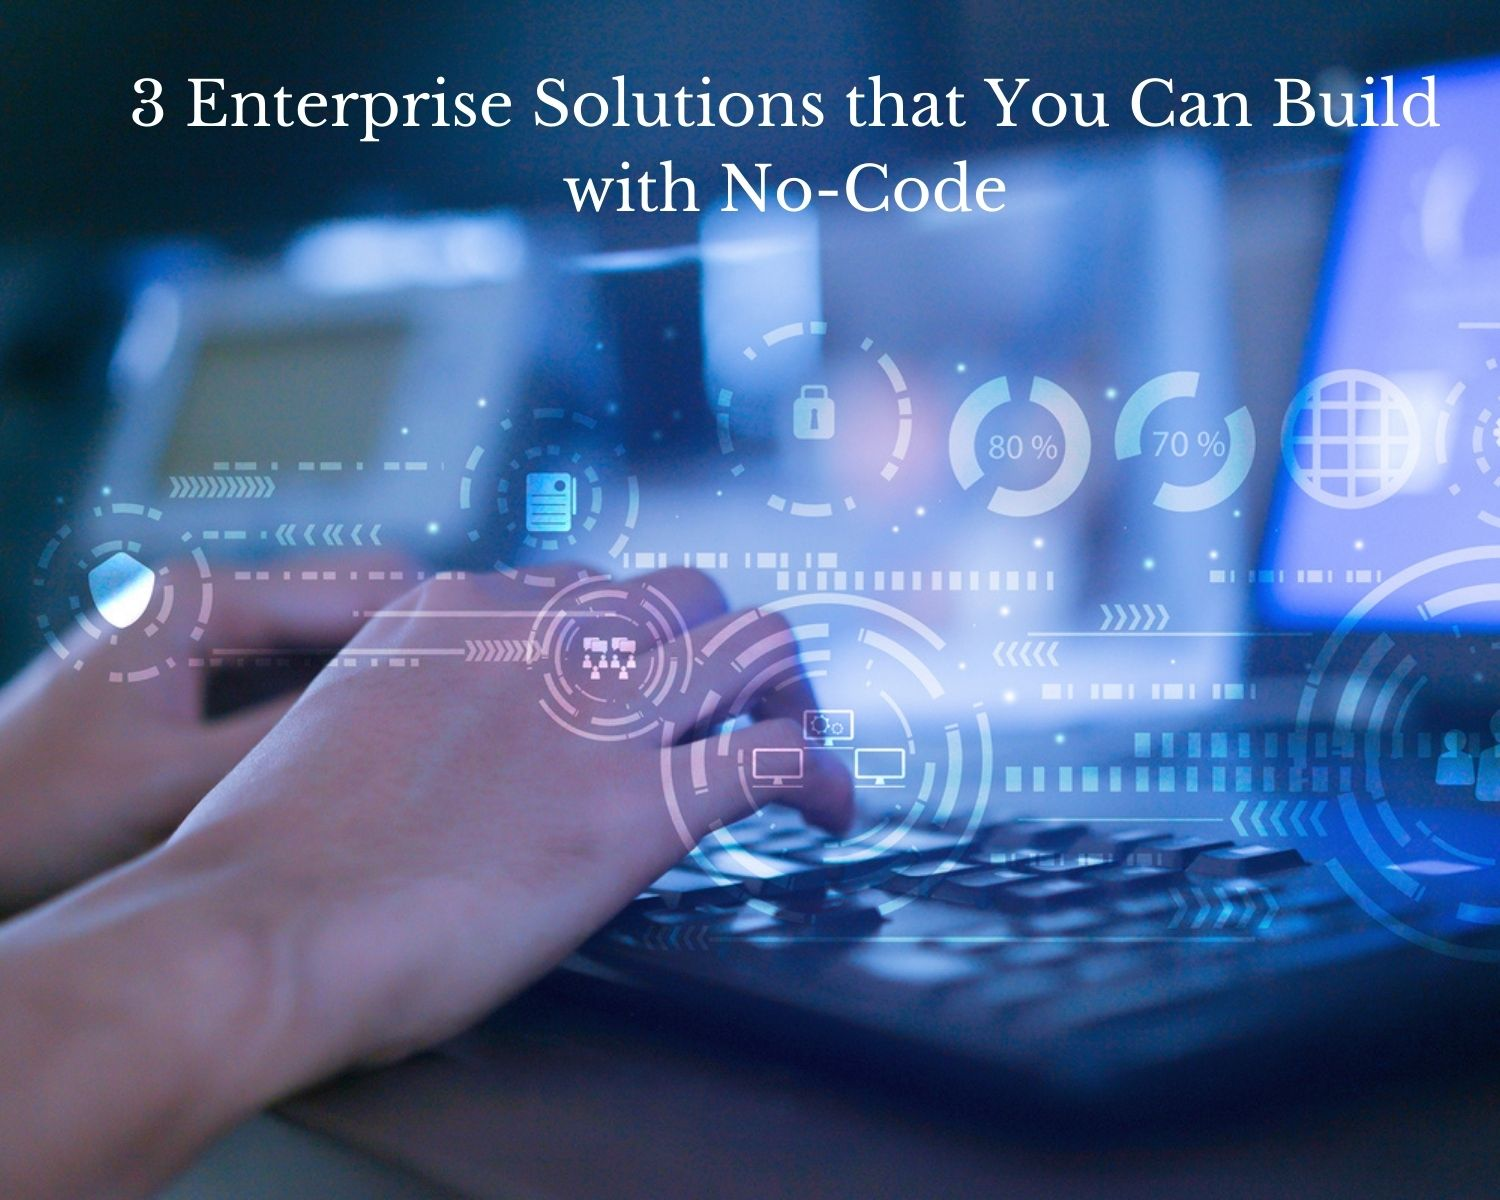 Three Enterprise Solutions that You Can Build with No-Code